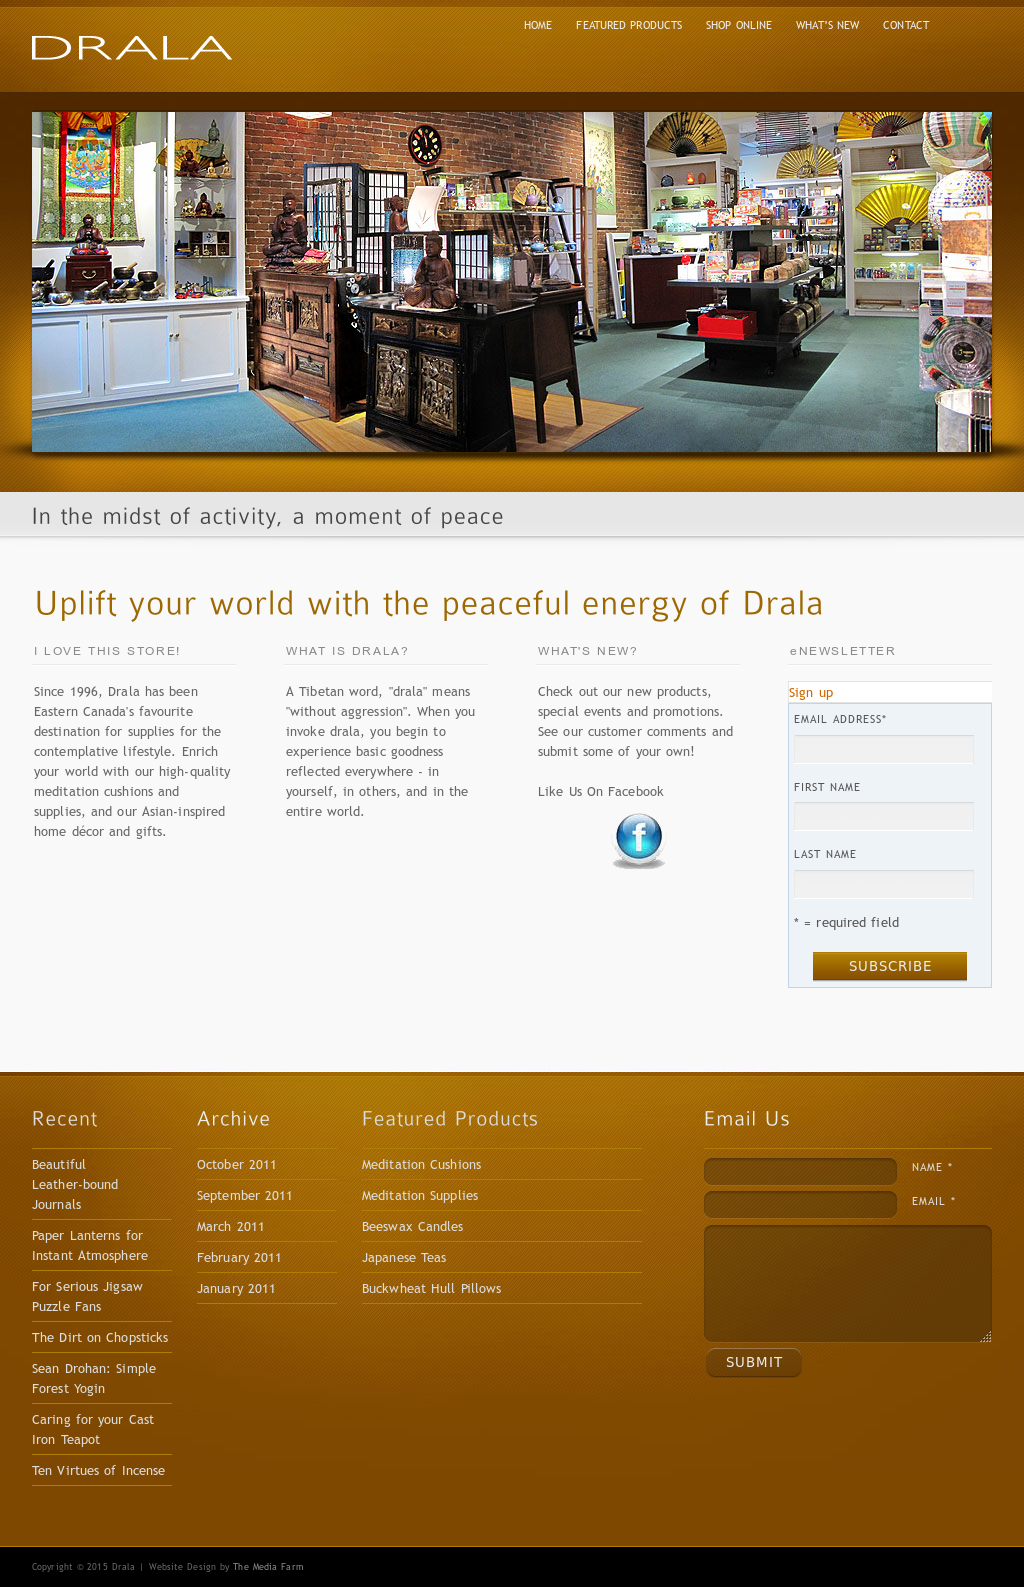 Drala Books & Gifts Competitors, Revenue and Employees